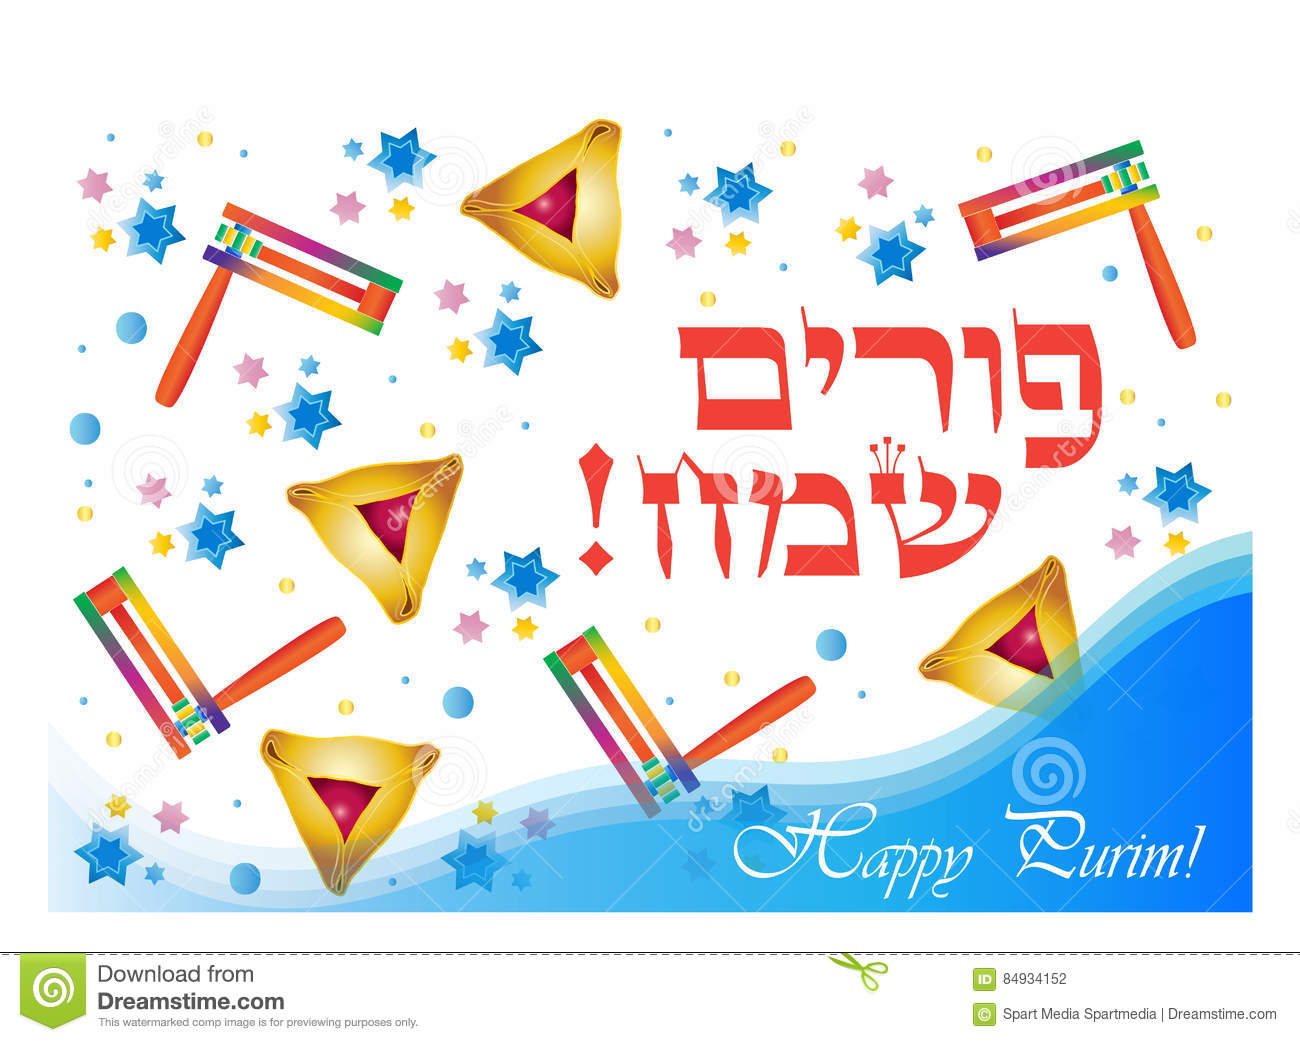 Purim stock vector illustration of esther illustration 84934152 happy purim greeting card translation from hebrew happy purim purim jewish holiday poster with stars of david traditional hamantaschen cookies m4hsunfo